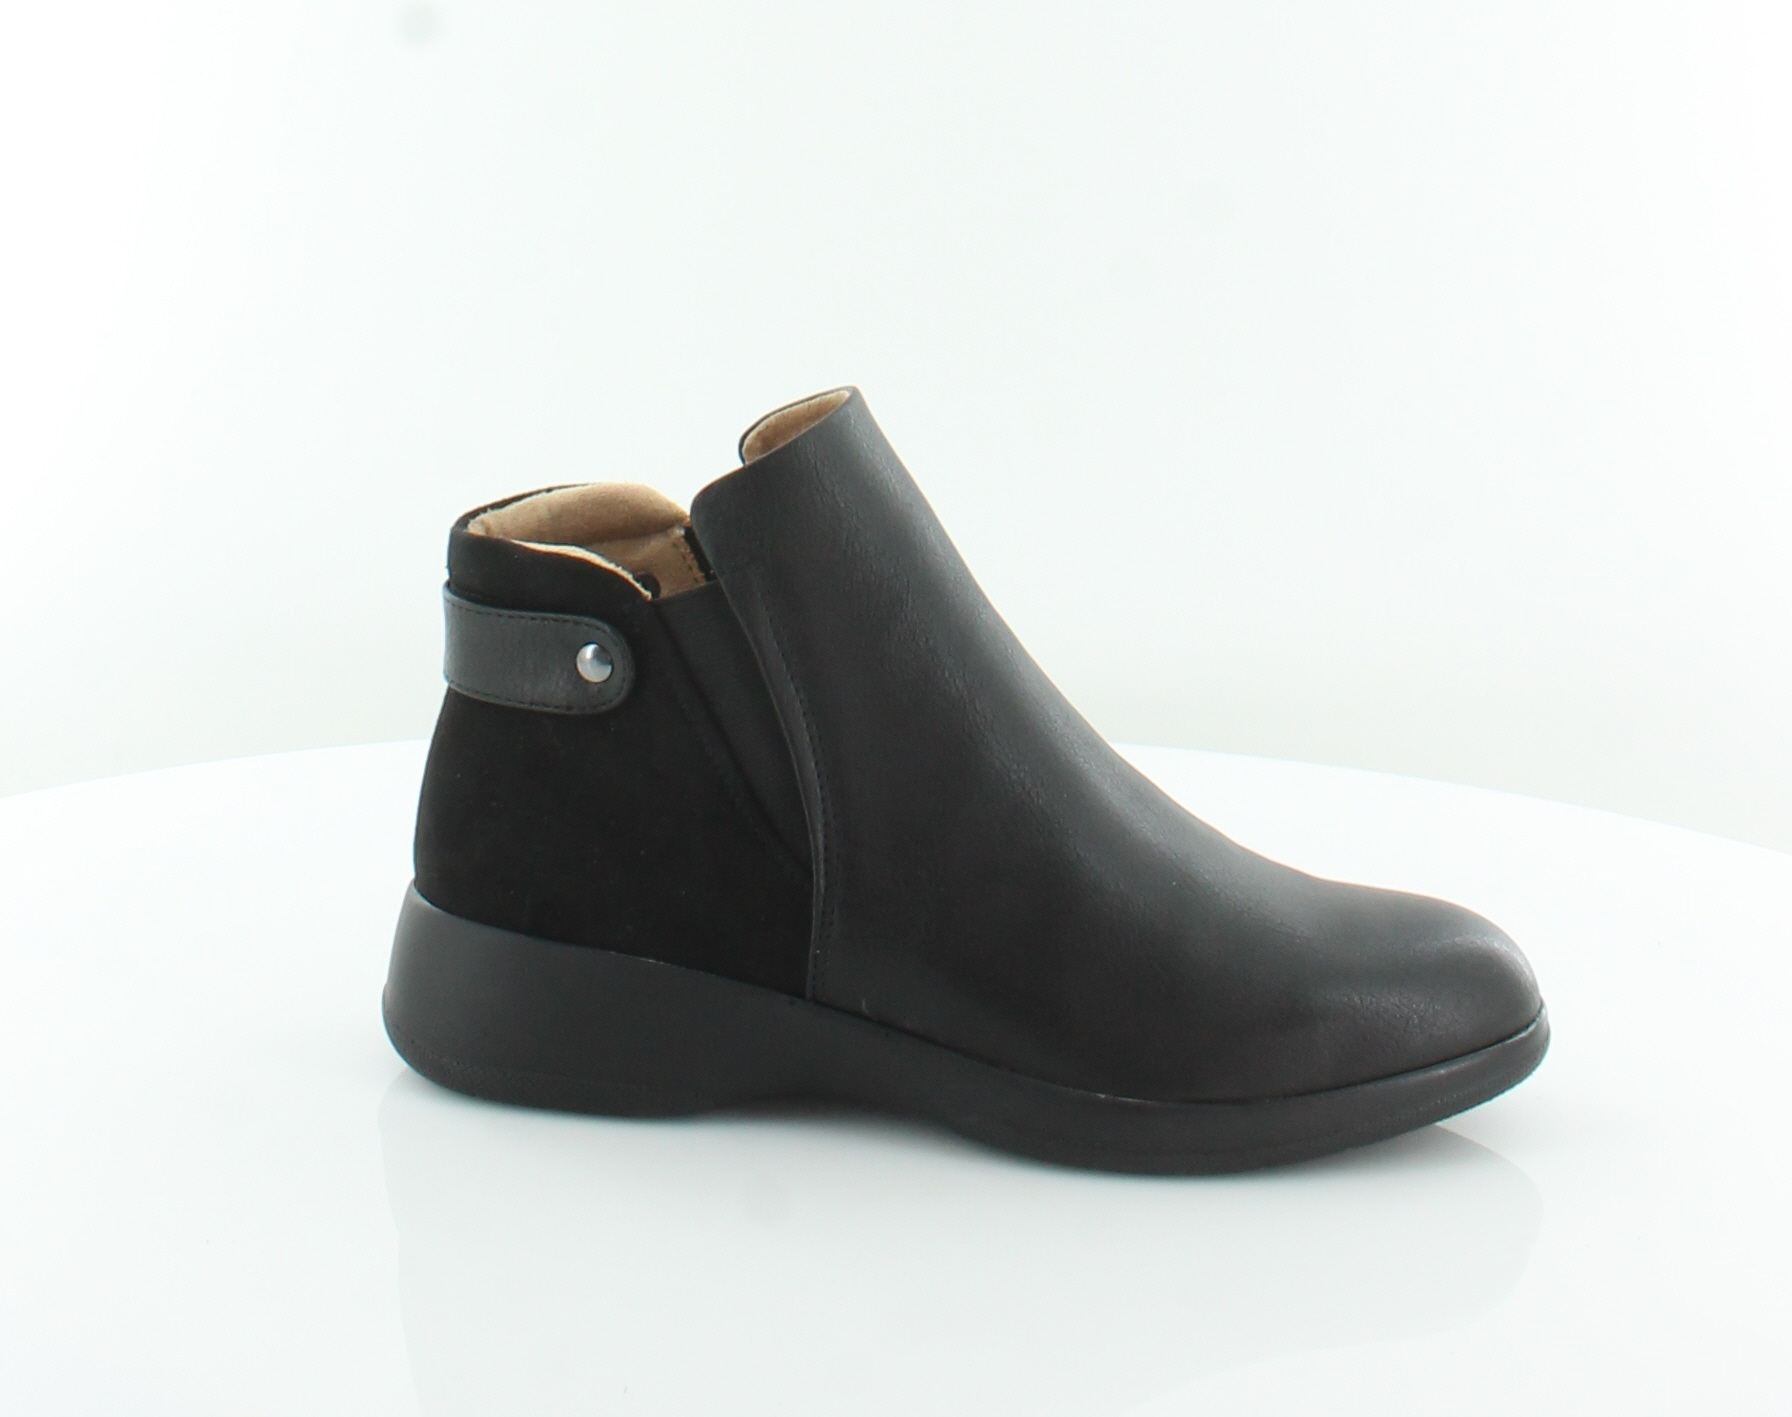 Naturalizer New Barita Black Womens shoes Size 5 M Boots MSRP  119